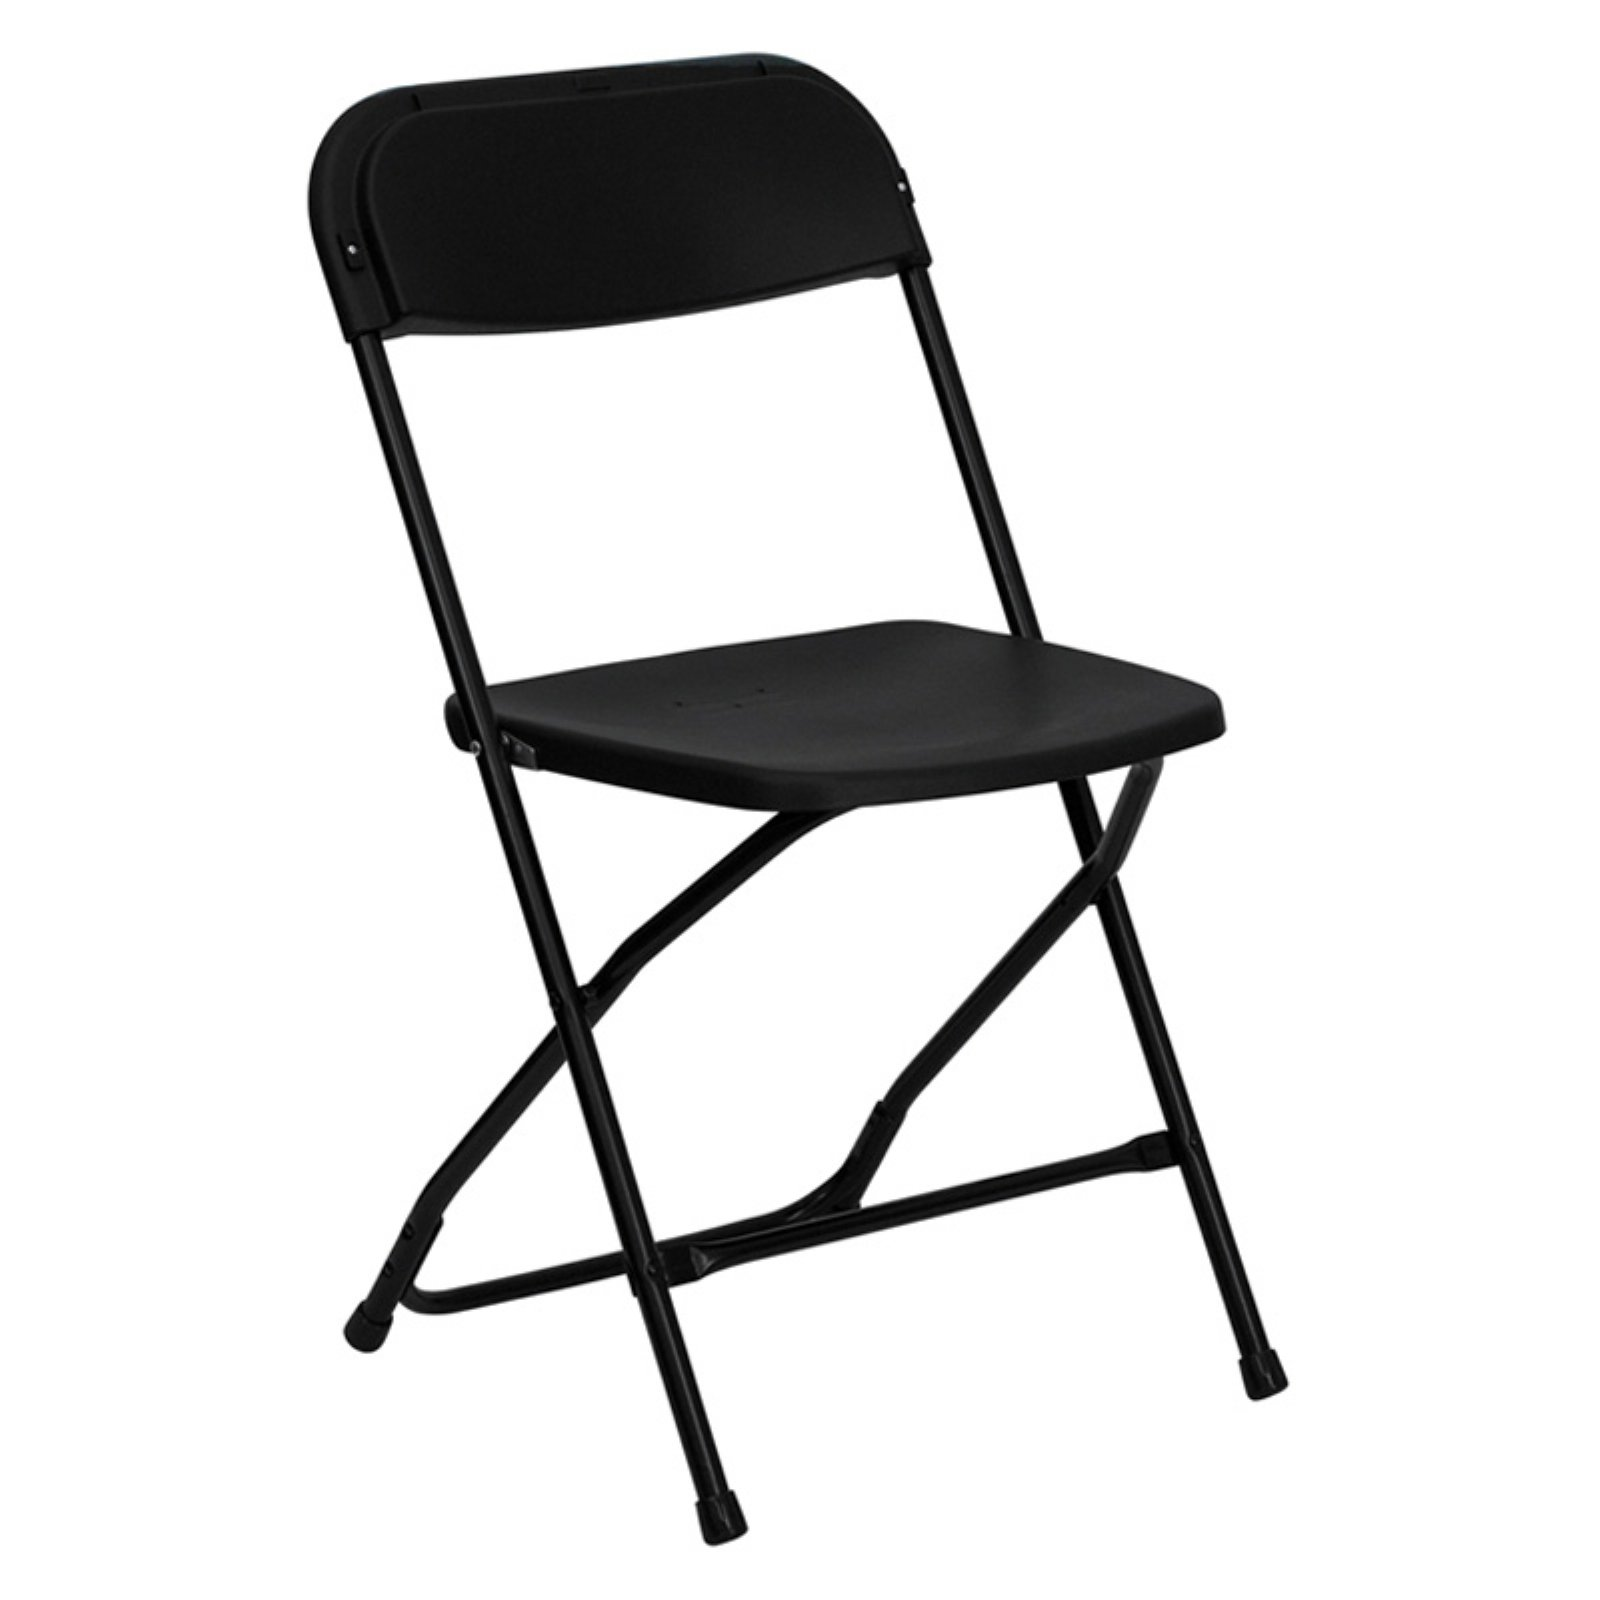 Flash Furniture HERCULES Series 800 lb Capacity Premium Plastic Folding Chair, Multiple Colors